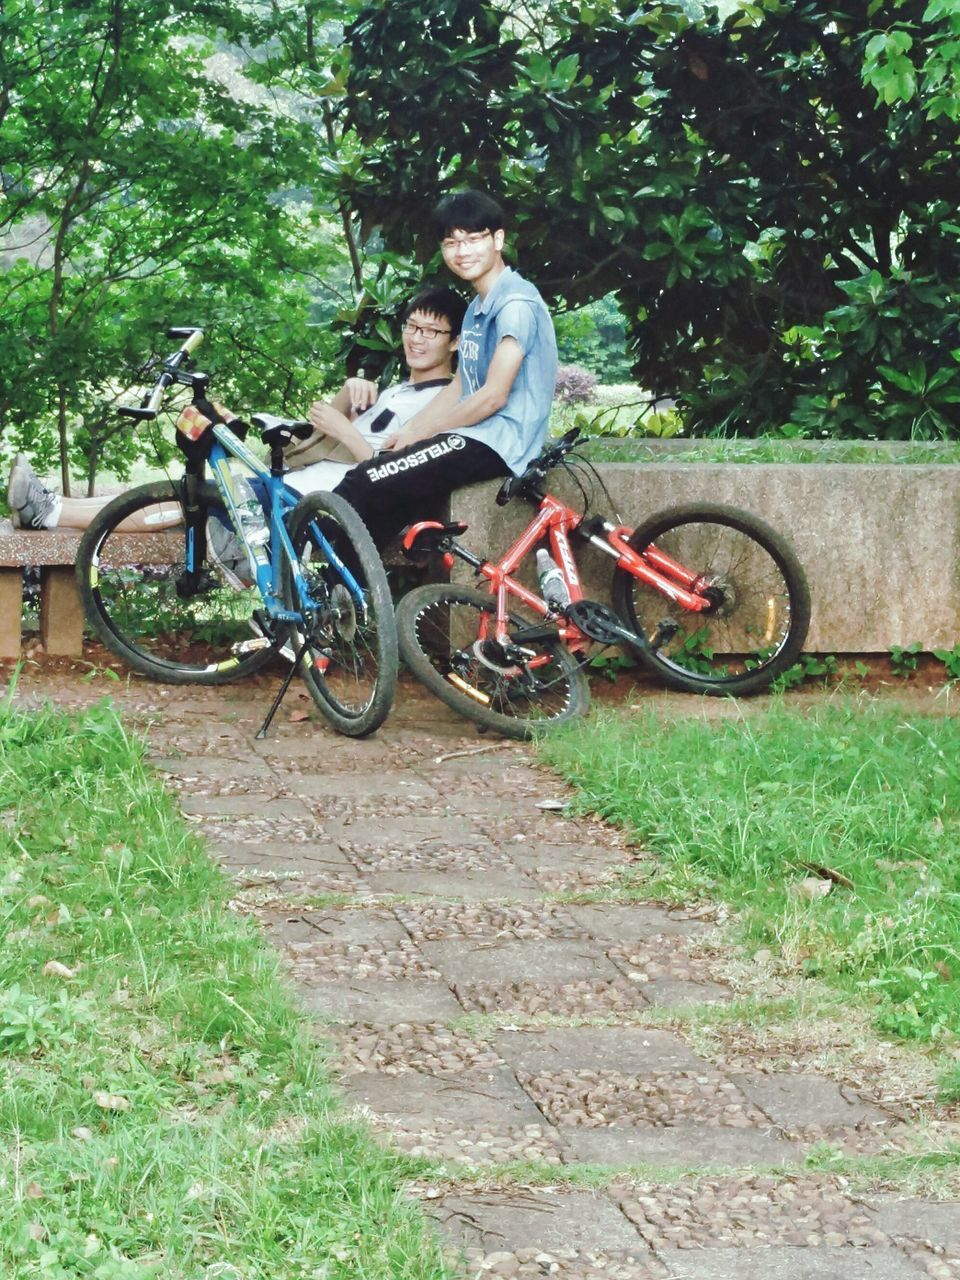 bicycle, transportation, two people, cycling, full length, riding, tree, togetherness, day, mode of transport, mountain bike, adventure, cycling helmet, nature, outdoors, real people, smiling, men, grass, friendship, young adult, people